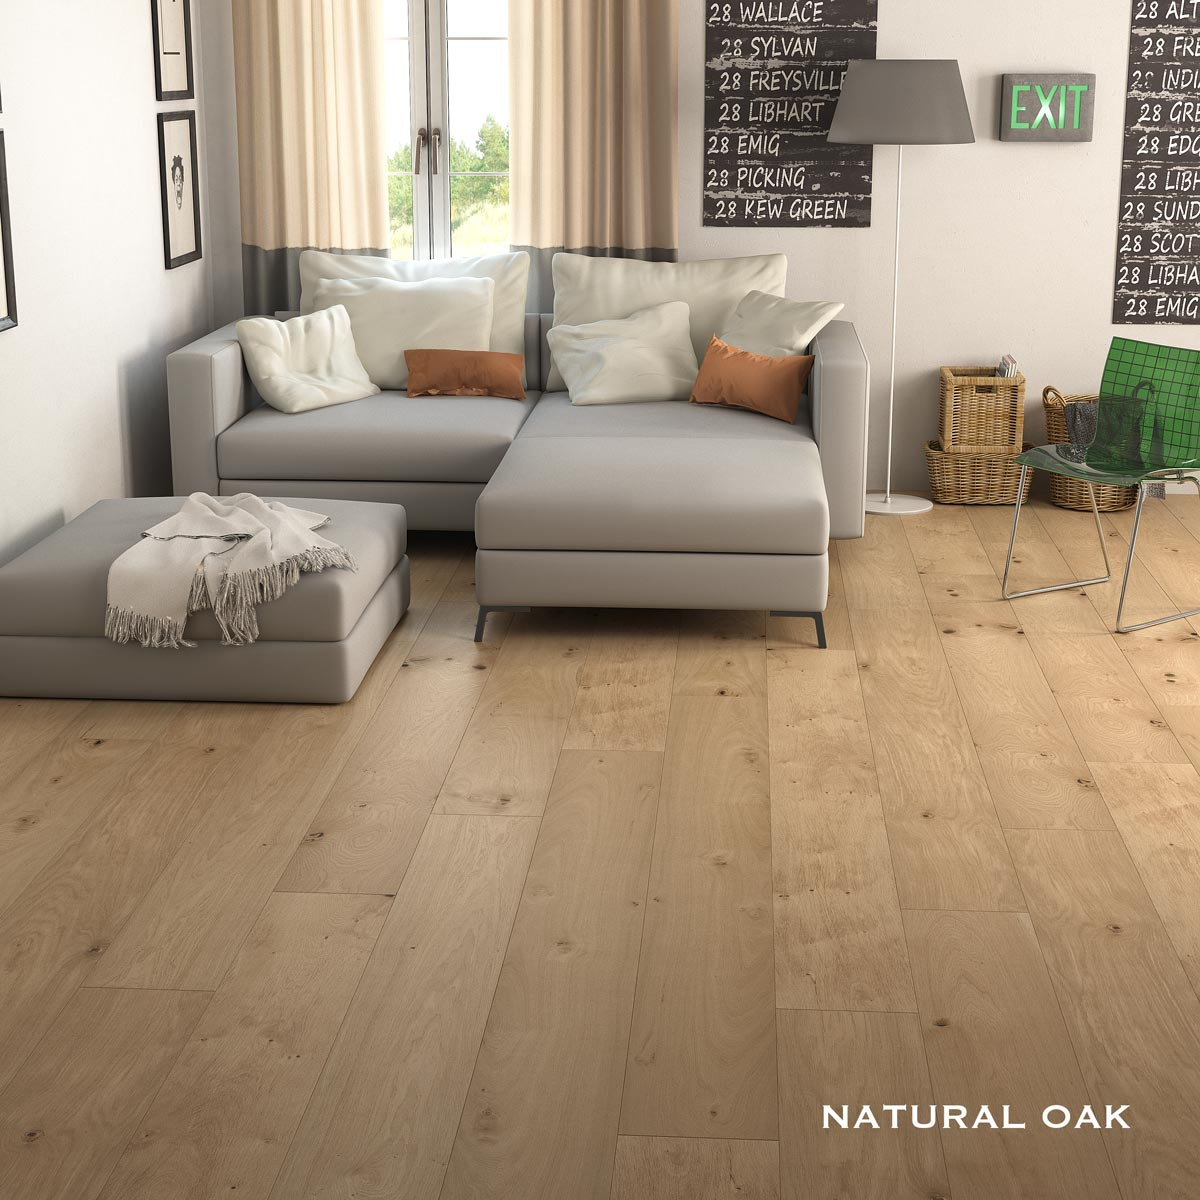 Hermitage natural oak virtual proline floors australia Virtual flooring